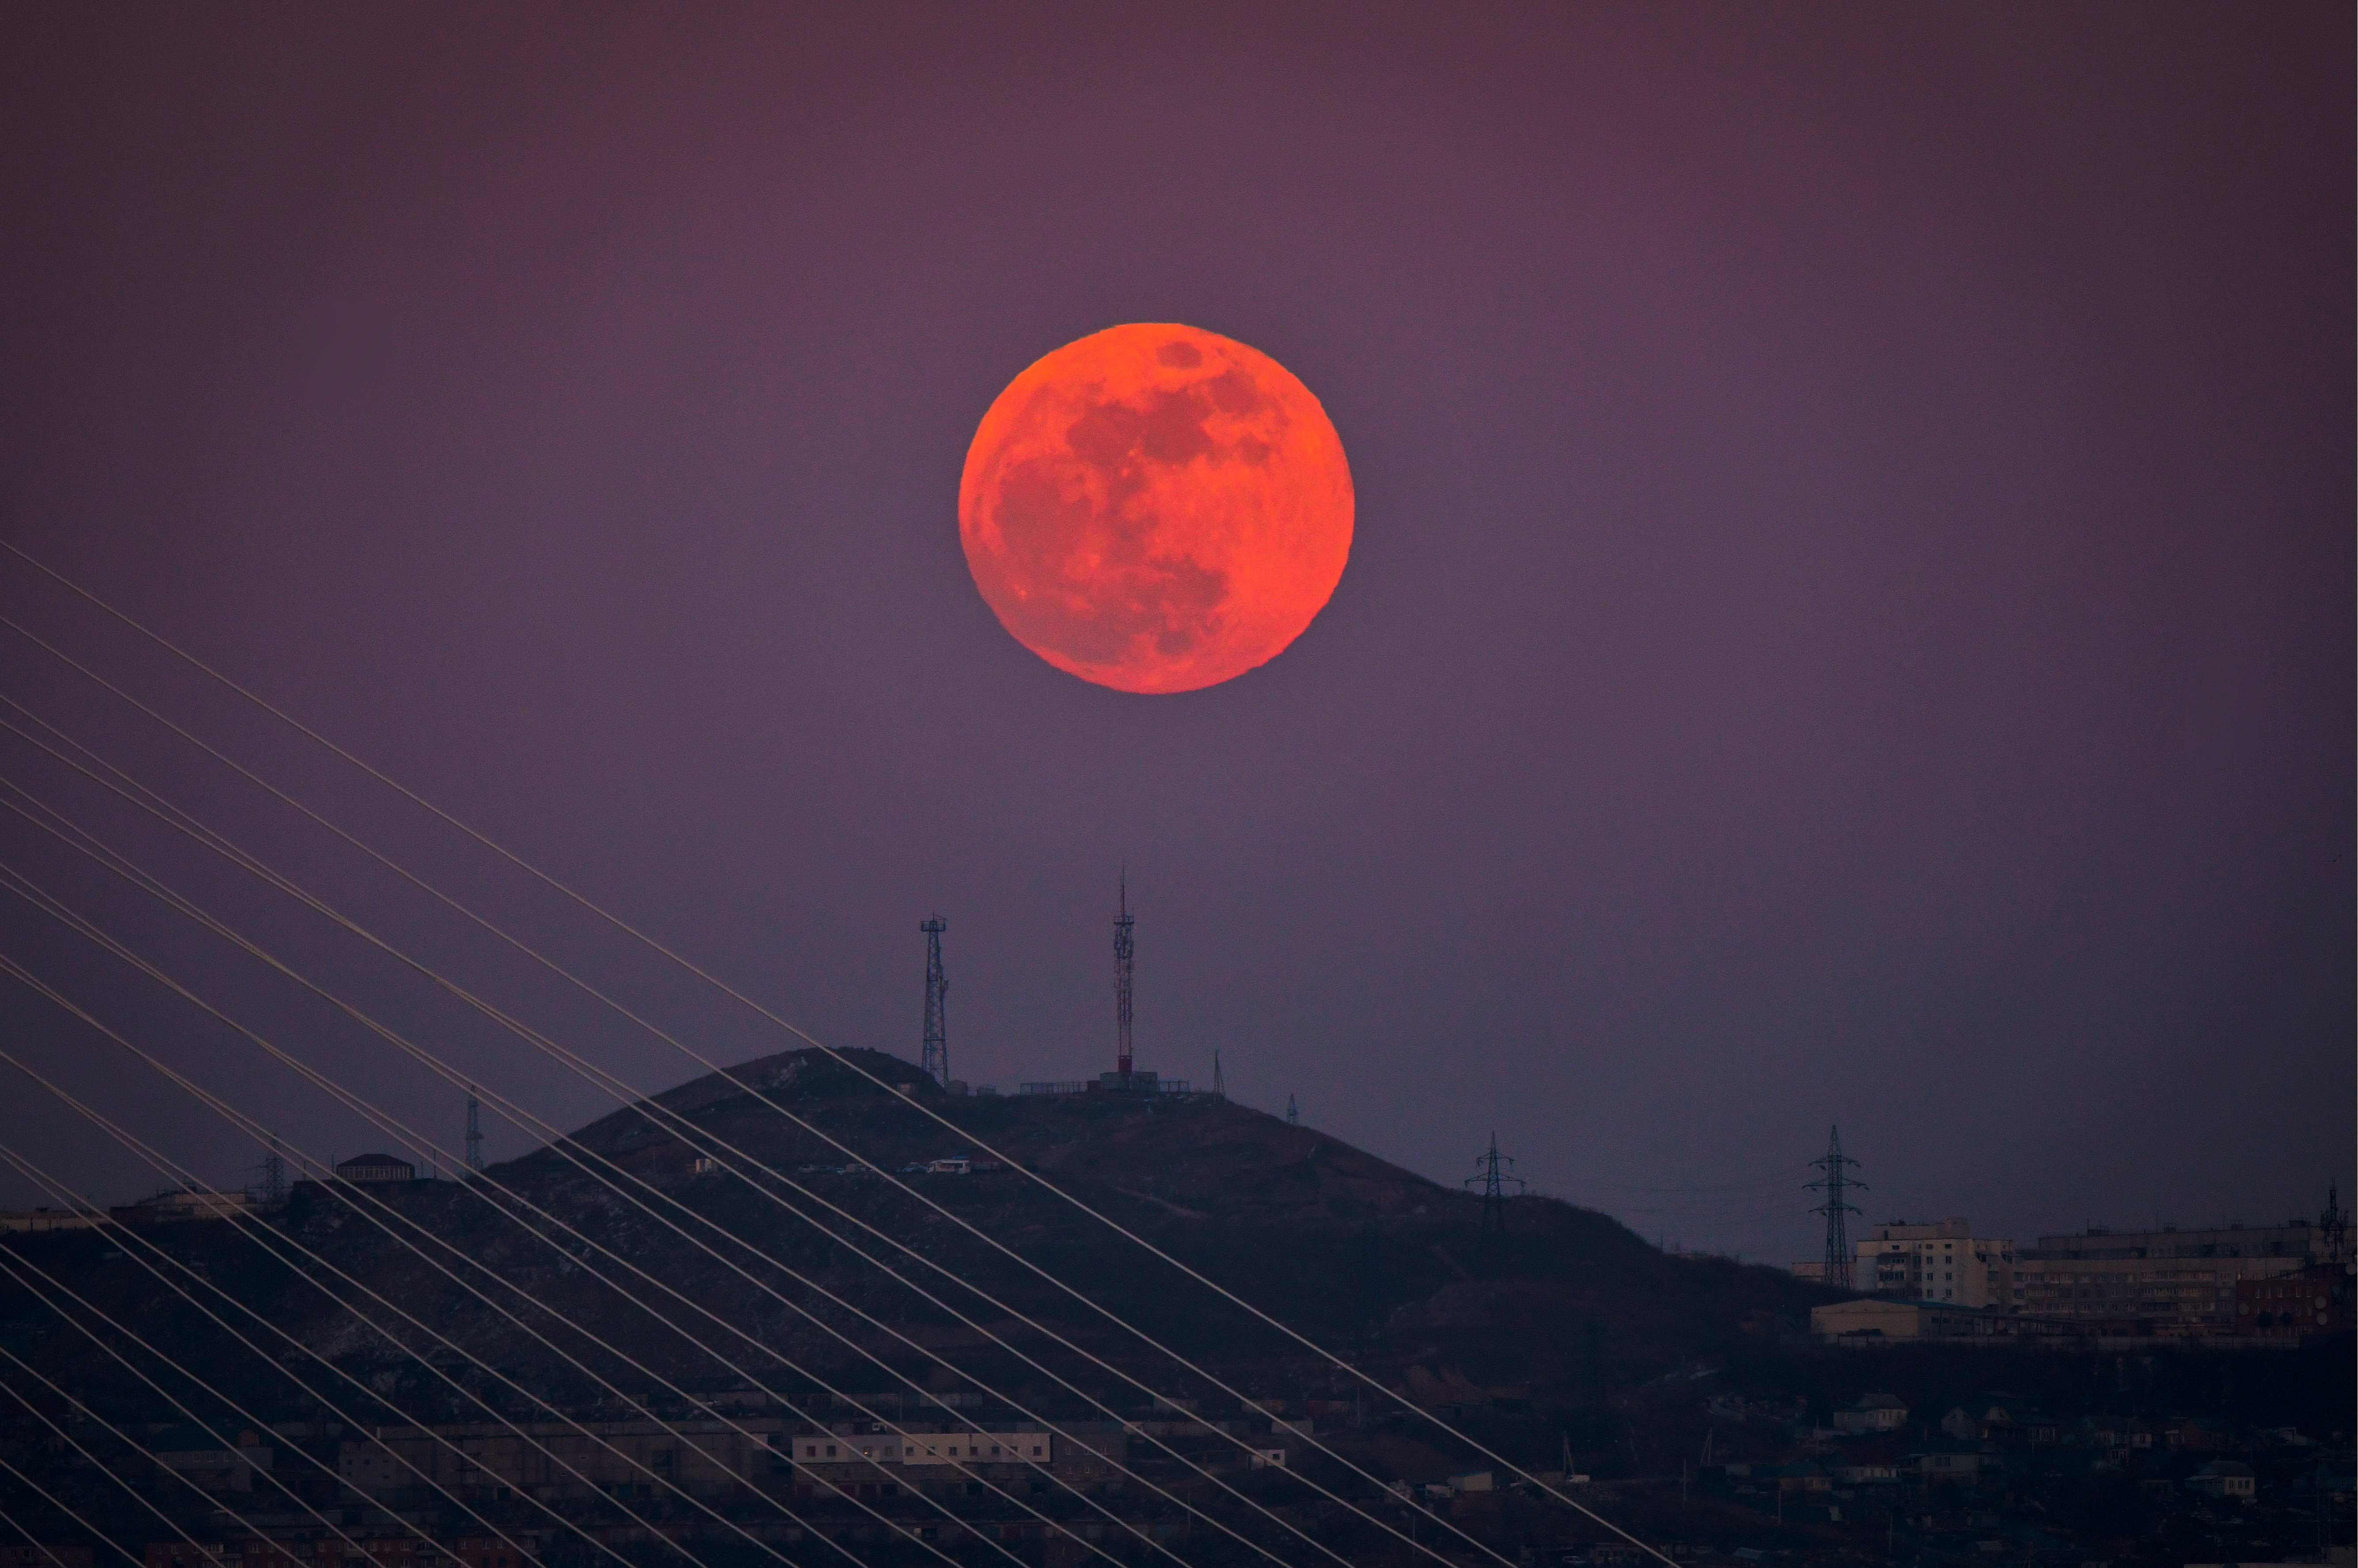 A red supermoon rises over hills in the city of Vladivostok in Russia's Far East on January 31, 2018.